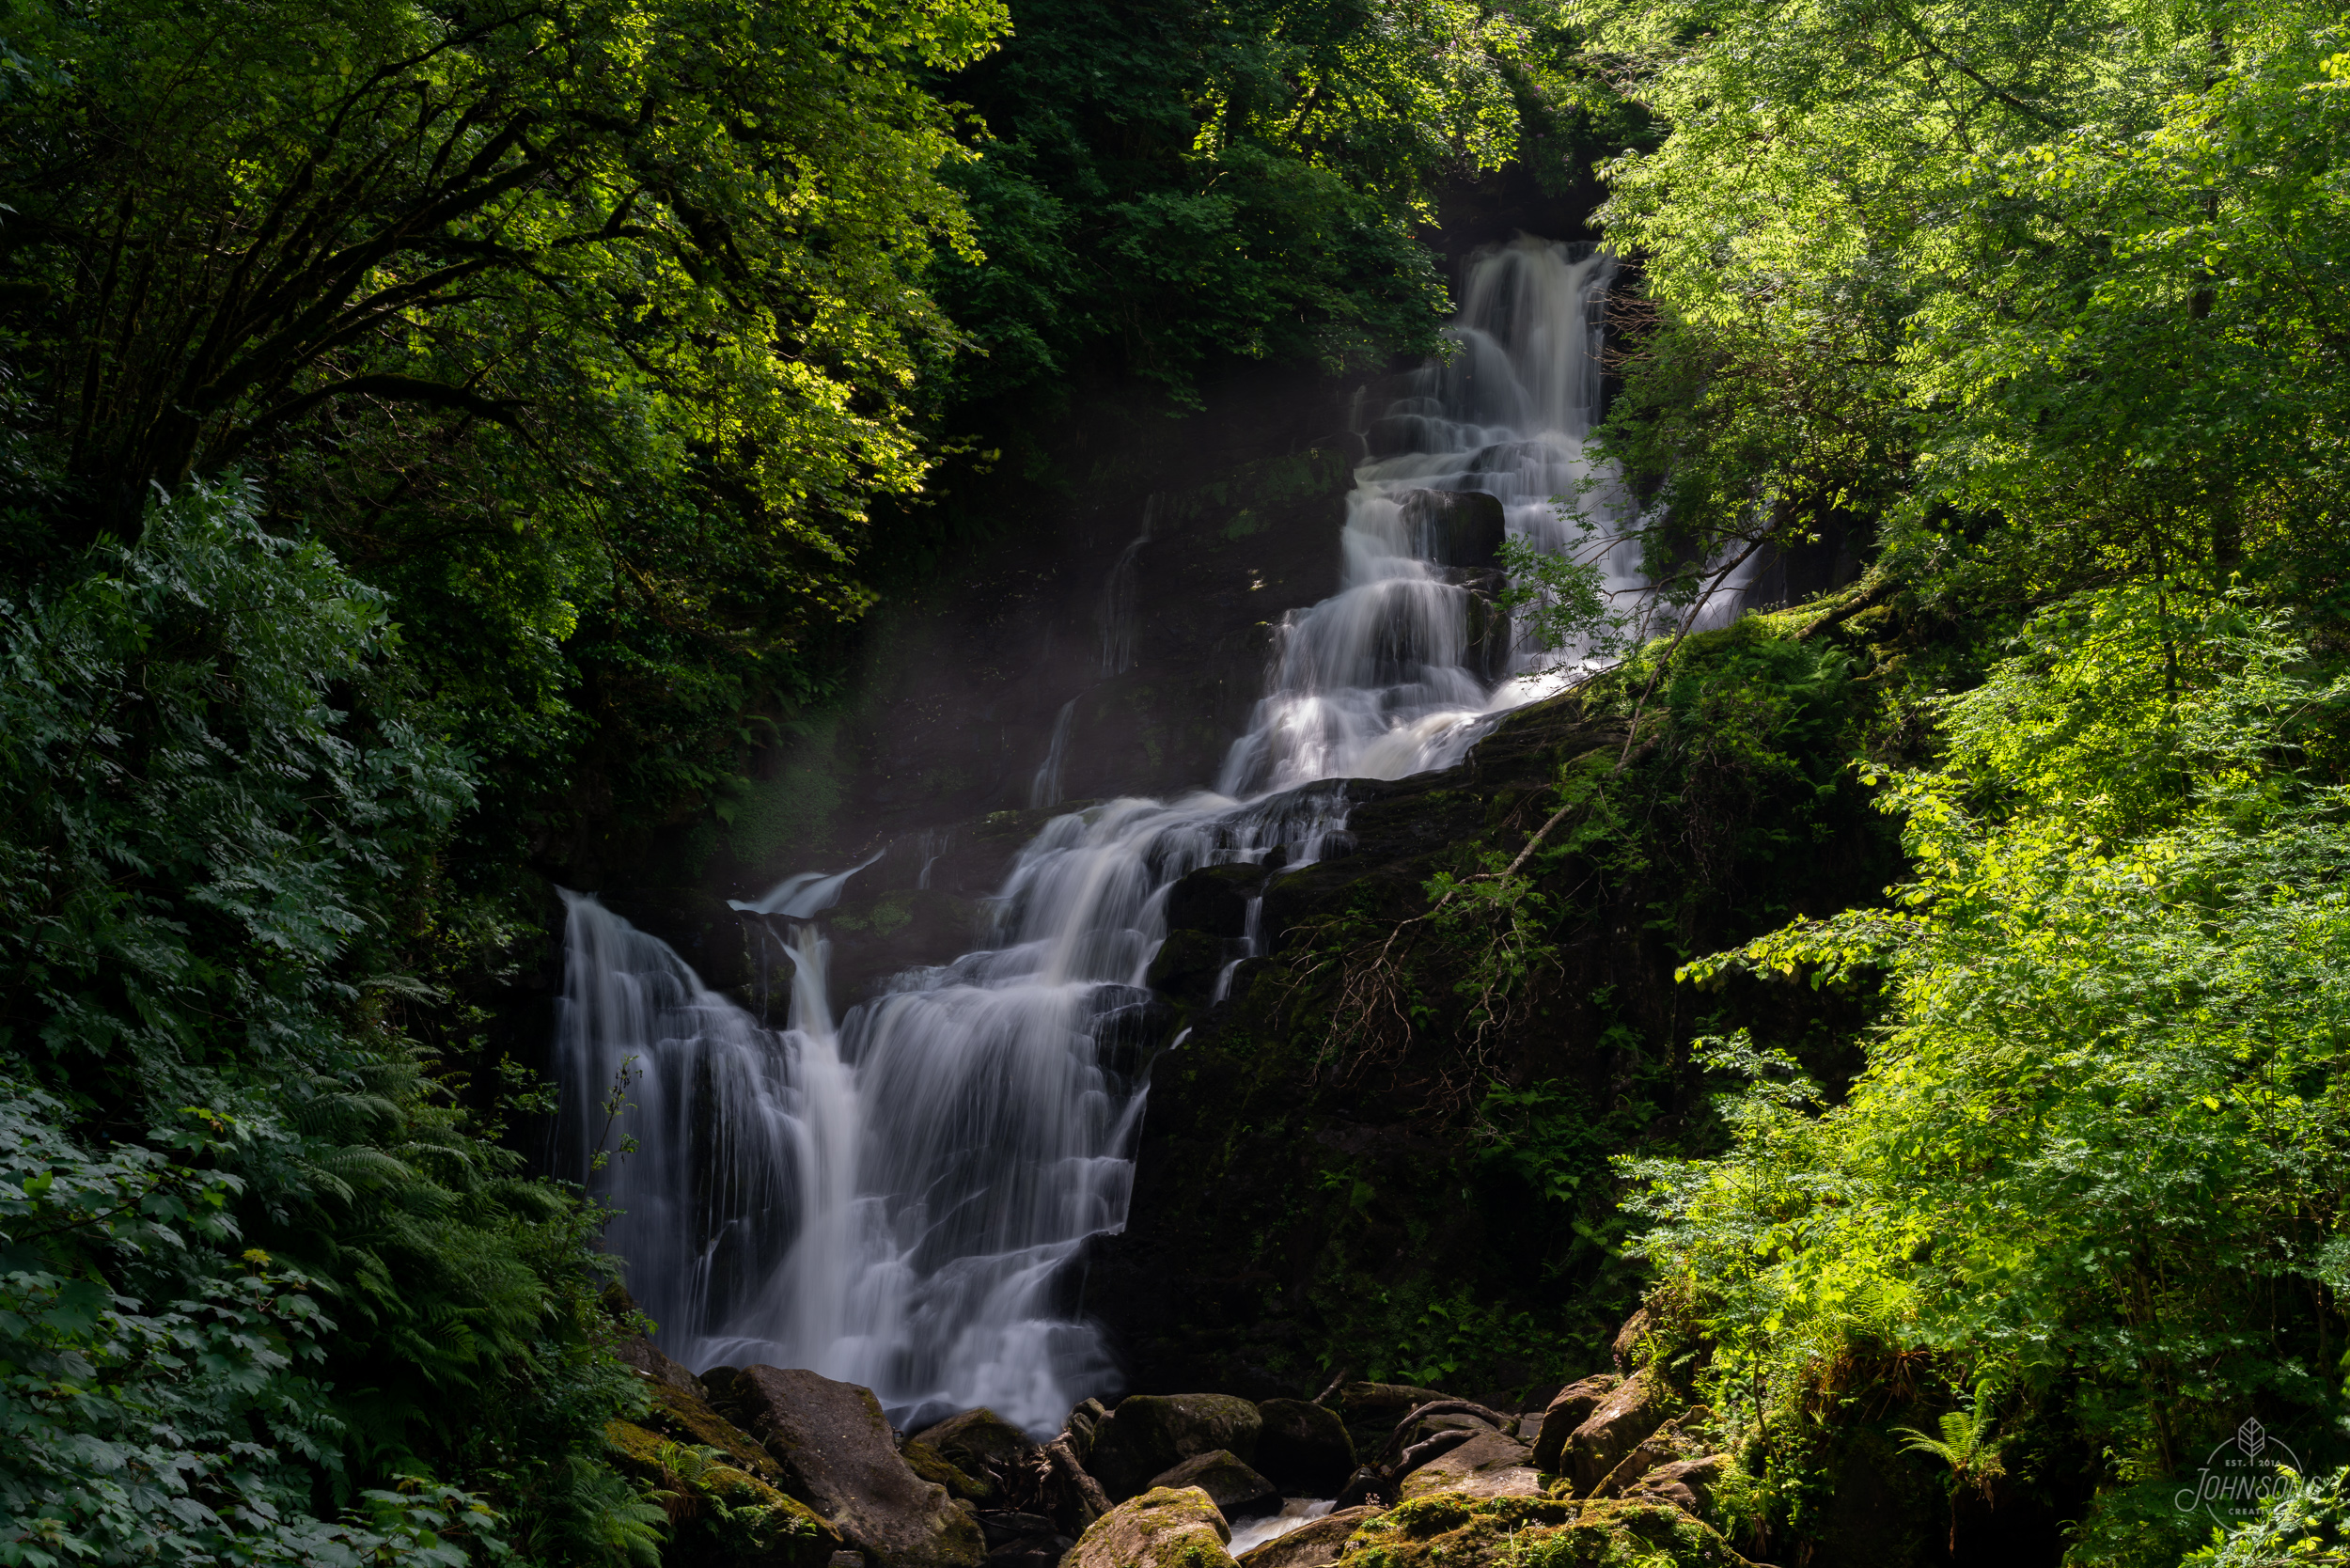 Sony a7rii | 55mm 1.8 | f11 | .25 sec | ISO 50 | Lee Circular Polarizing Filter    Killarney National Park is probably a 2-3 day size of park that we did in 1.    There is some good history (Ross Castle), insane gardens, and obviously great views.    This is Torc Waterfall. It was a 5 minute walk up to here, but there's a loop that you can continue on for anywhere from 30 minutes to 2 hours.